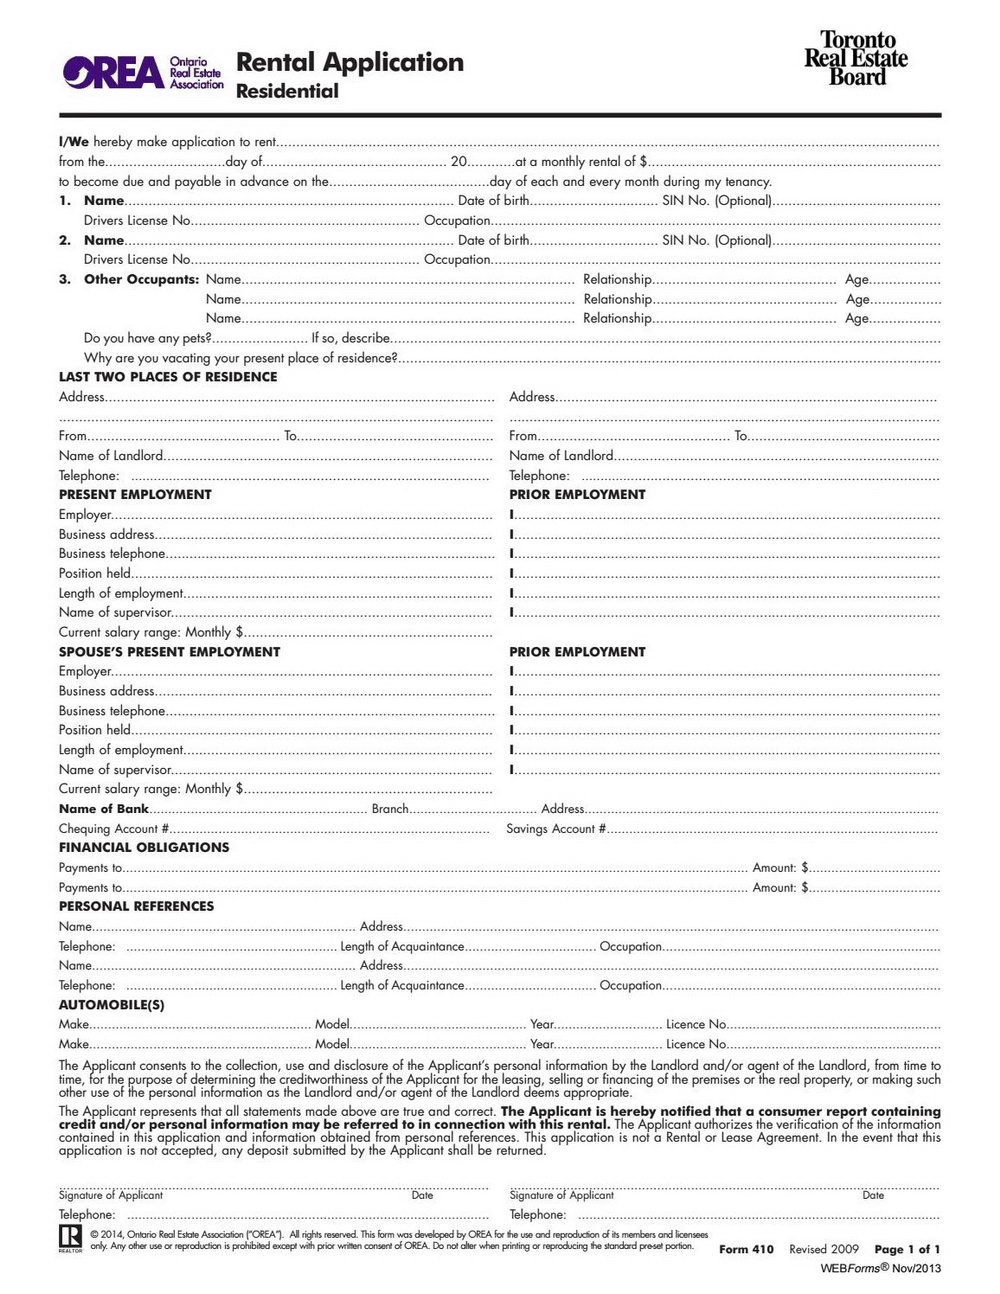 Apartment Rental Application Form Ontario